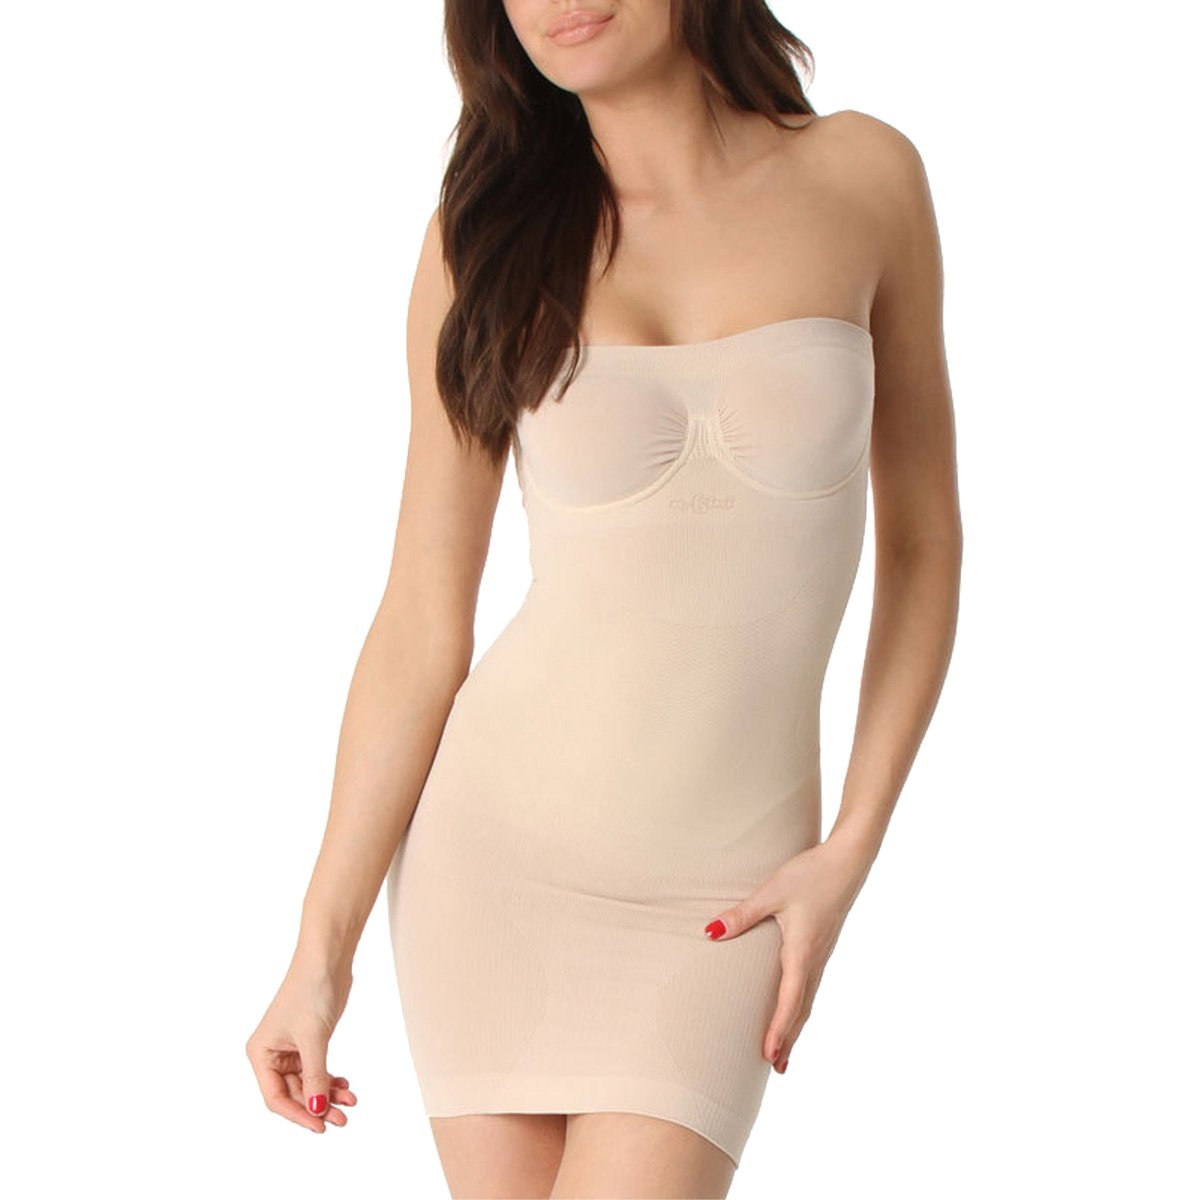 N Fini 523 Strapless Slip Dress Shaper with Built-in Bra, 2X & 3X - Nude 523XN